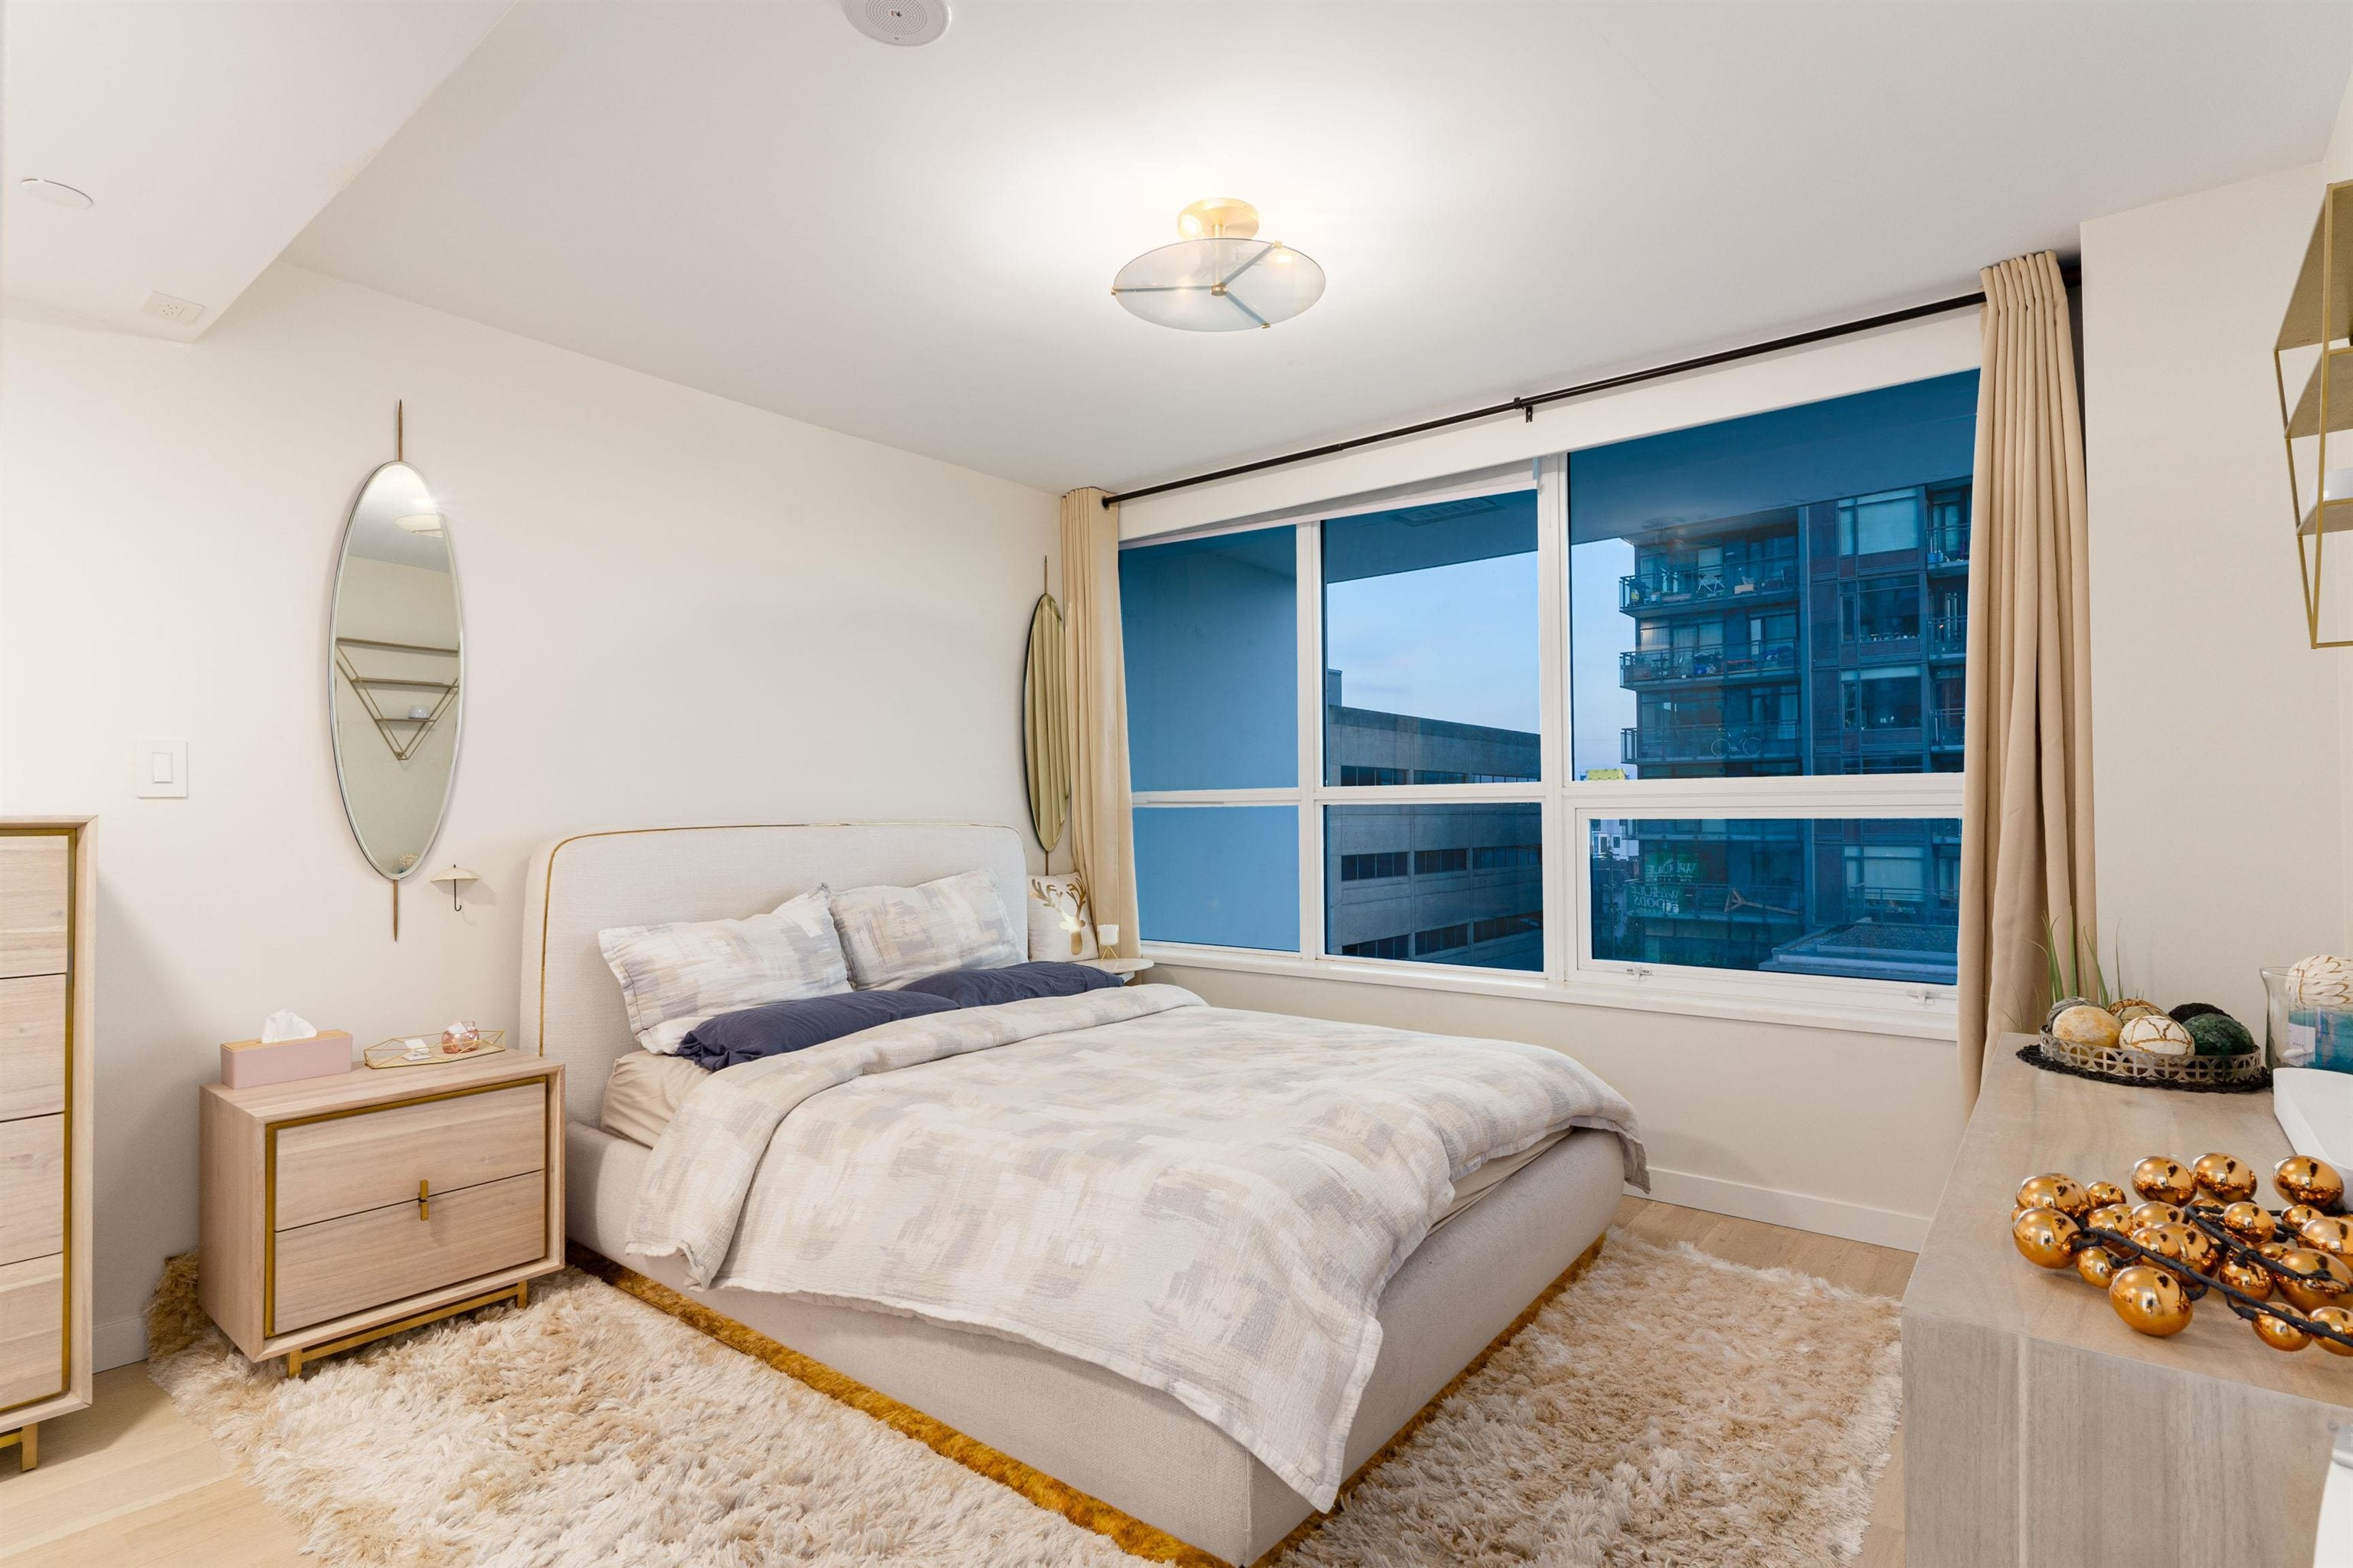 306 112 E 13TH STREET - Central Lonsdale Apartment/Condo for sale, 2 Bedrooms (R2619655) - #16